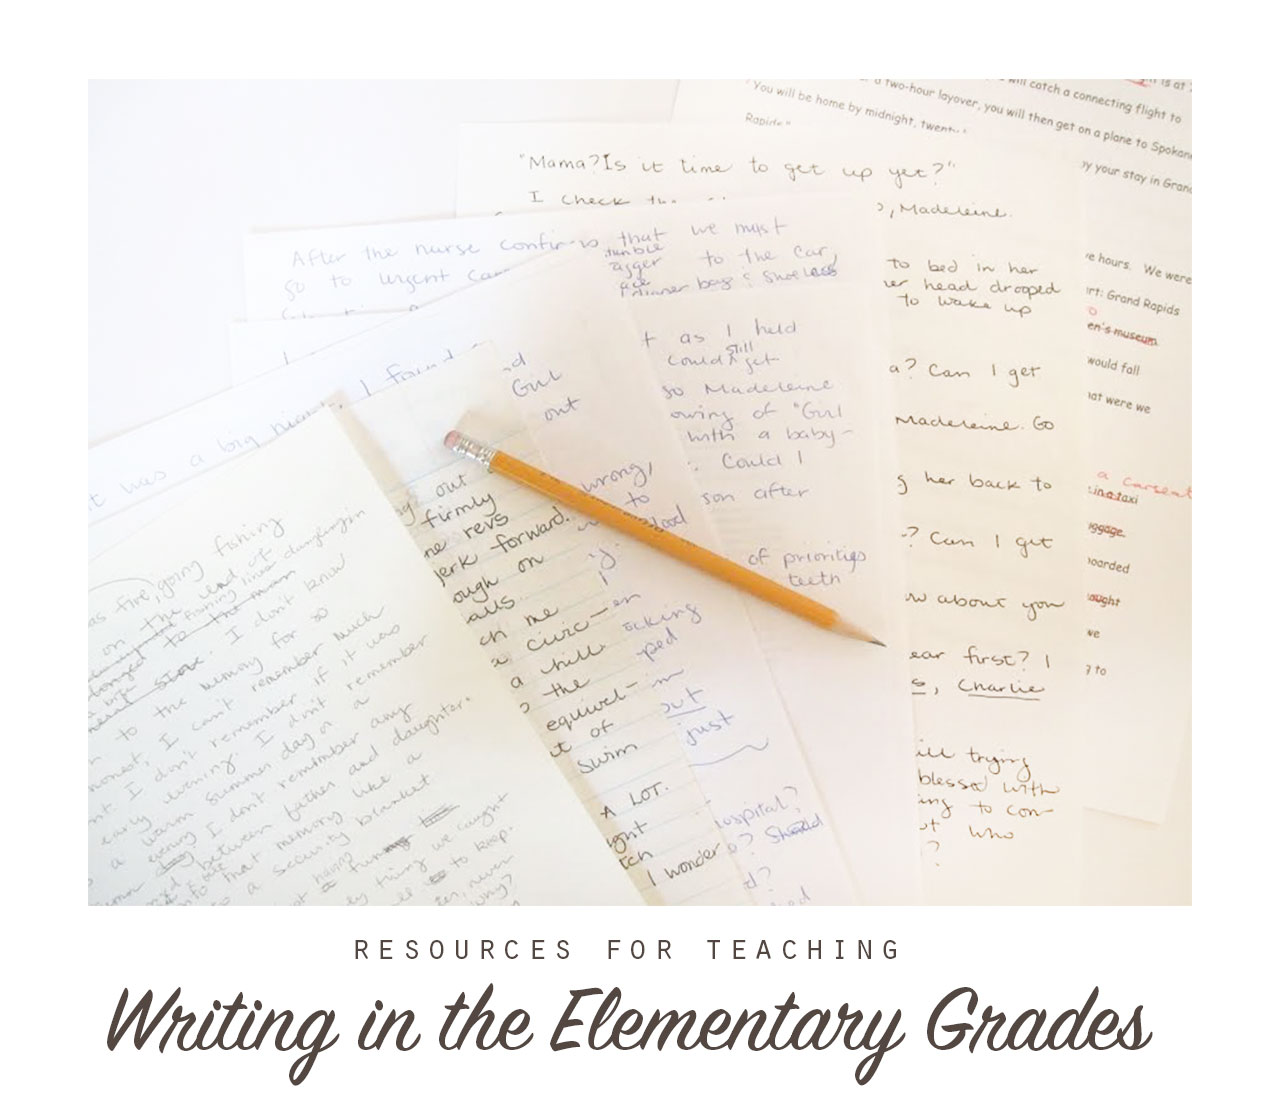 Resources for Teaching Writing in the Elementary Grades